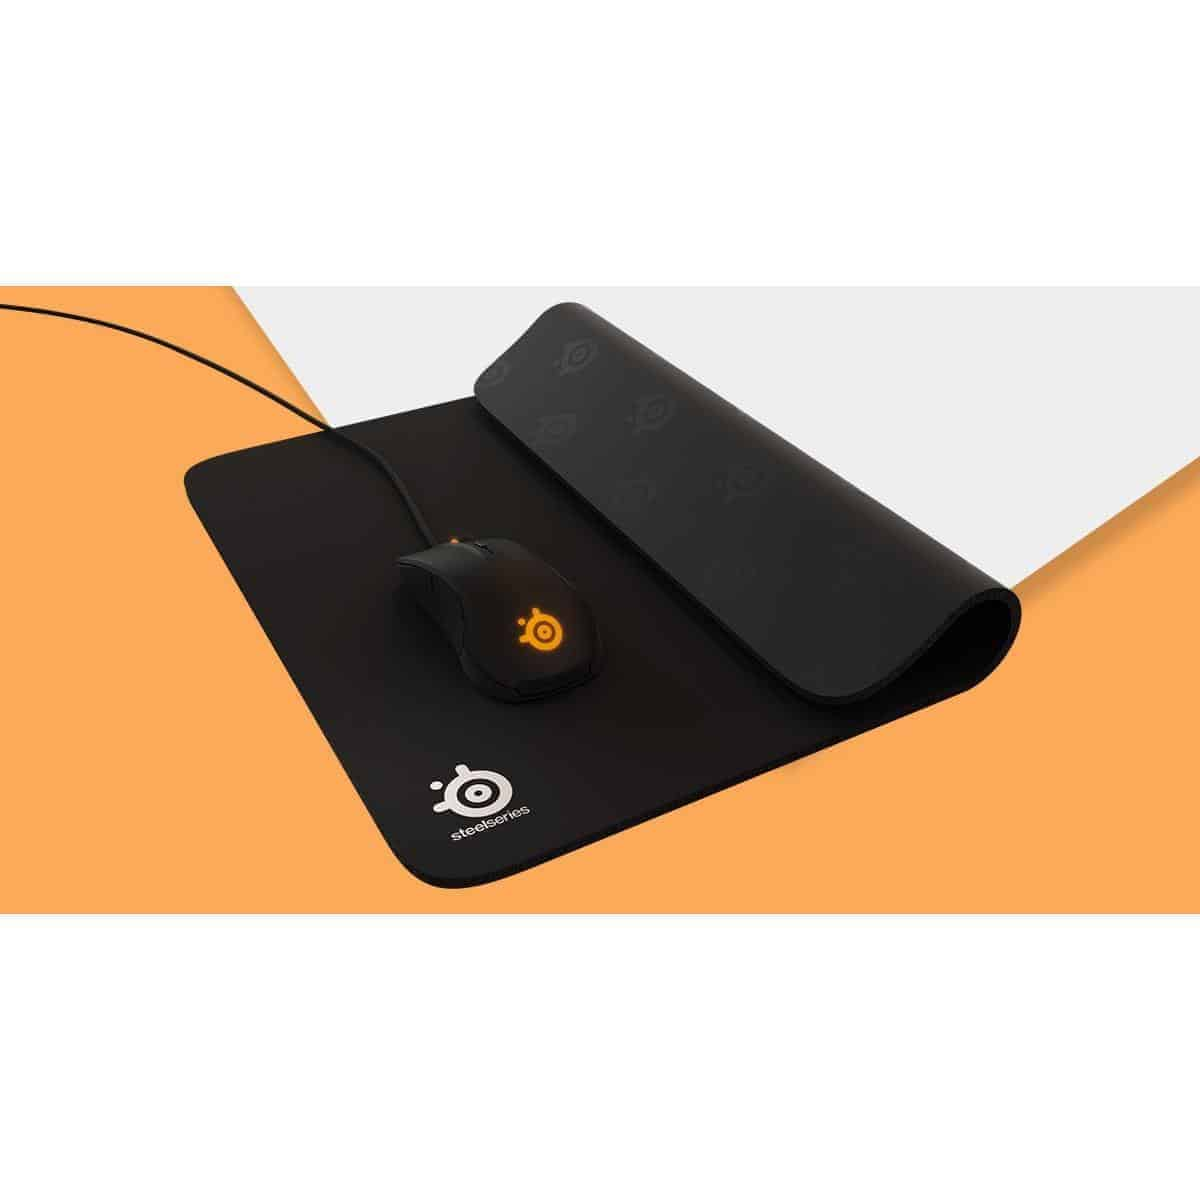 SteelSeries QcK Heavy, Thick Gaming Mouse Pad, 450mm x 400mm, Cloth, Rubber Base, Laser & Optical Mouse Compatible, Kartmy